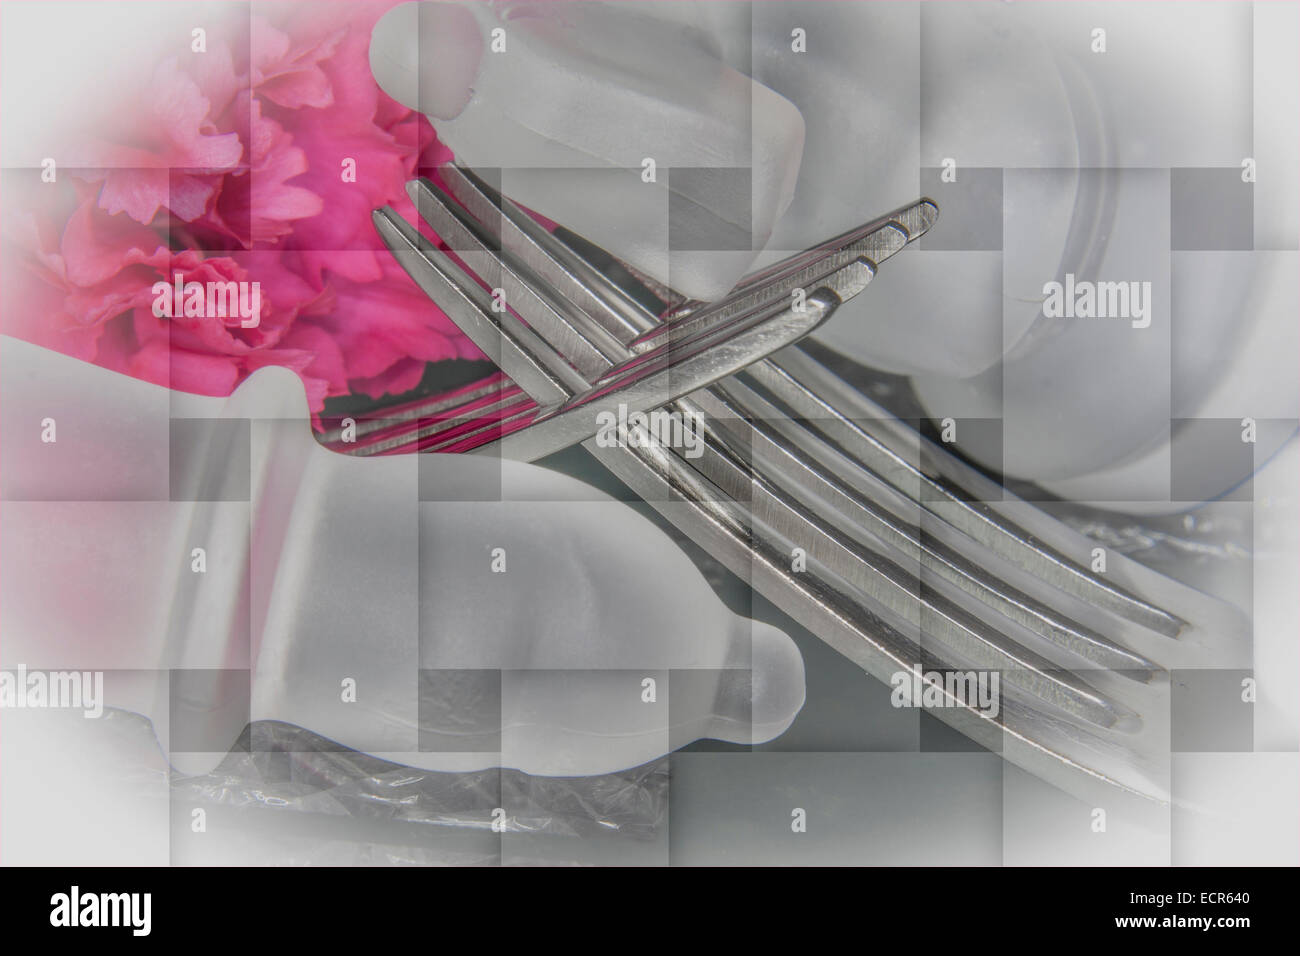 Creative Composition - Stock Image